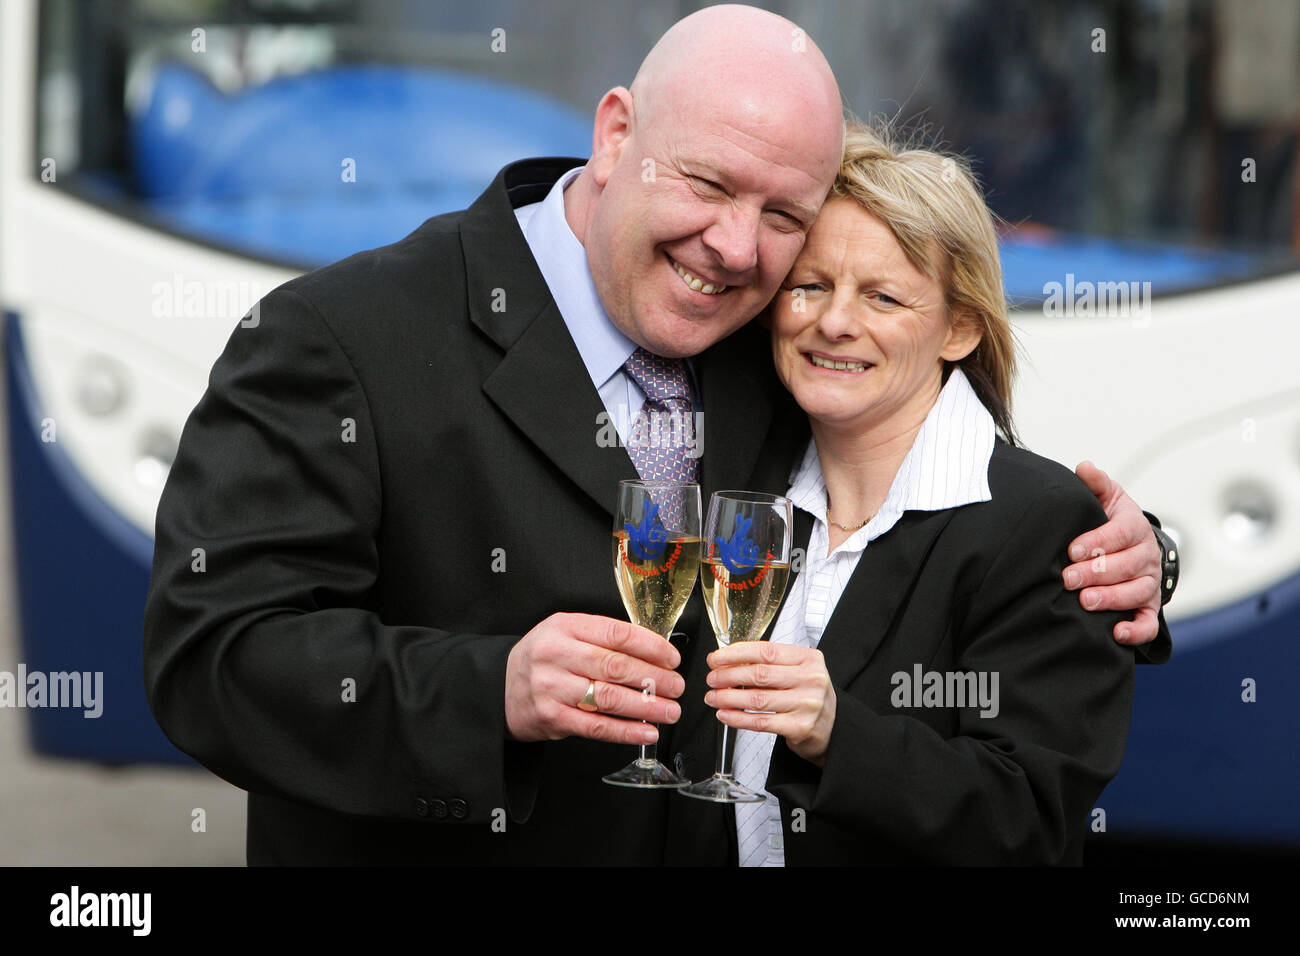 Bus driver Kevin Halstead and his partner Josephine Jones at Shaw Hill Golf and Country Club in Chorley, Lancashire, after Kevin won 2,302,668 on the National Lottery last Saturday. Stock Photo